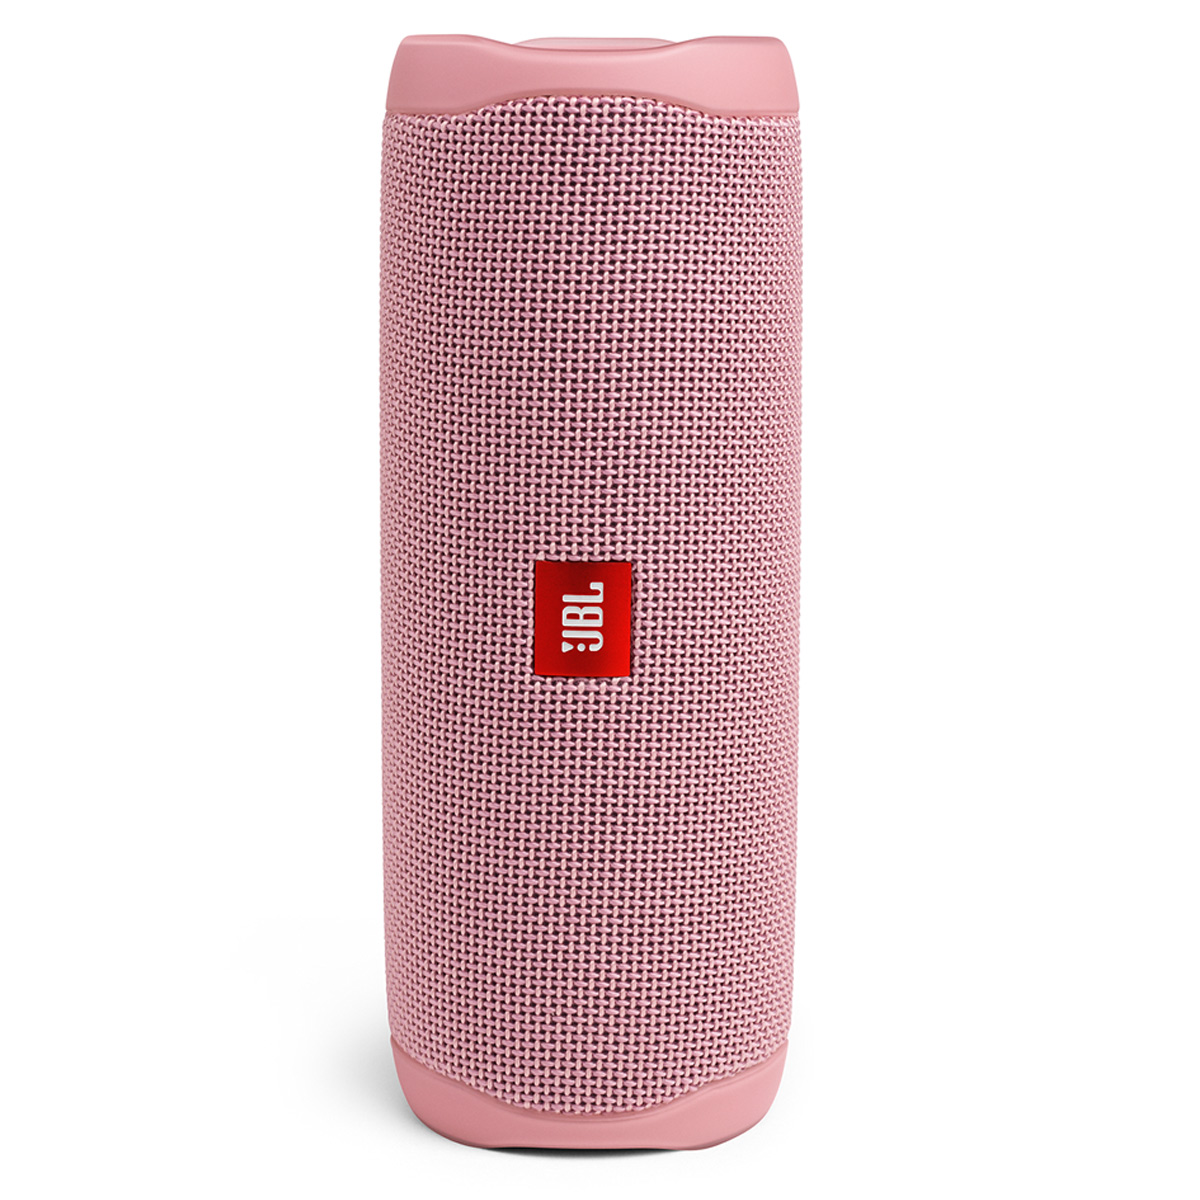 JBL-Flip-5-Portable-Waterproof-Bluetooth-Speaker thumbnail 26